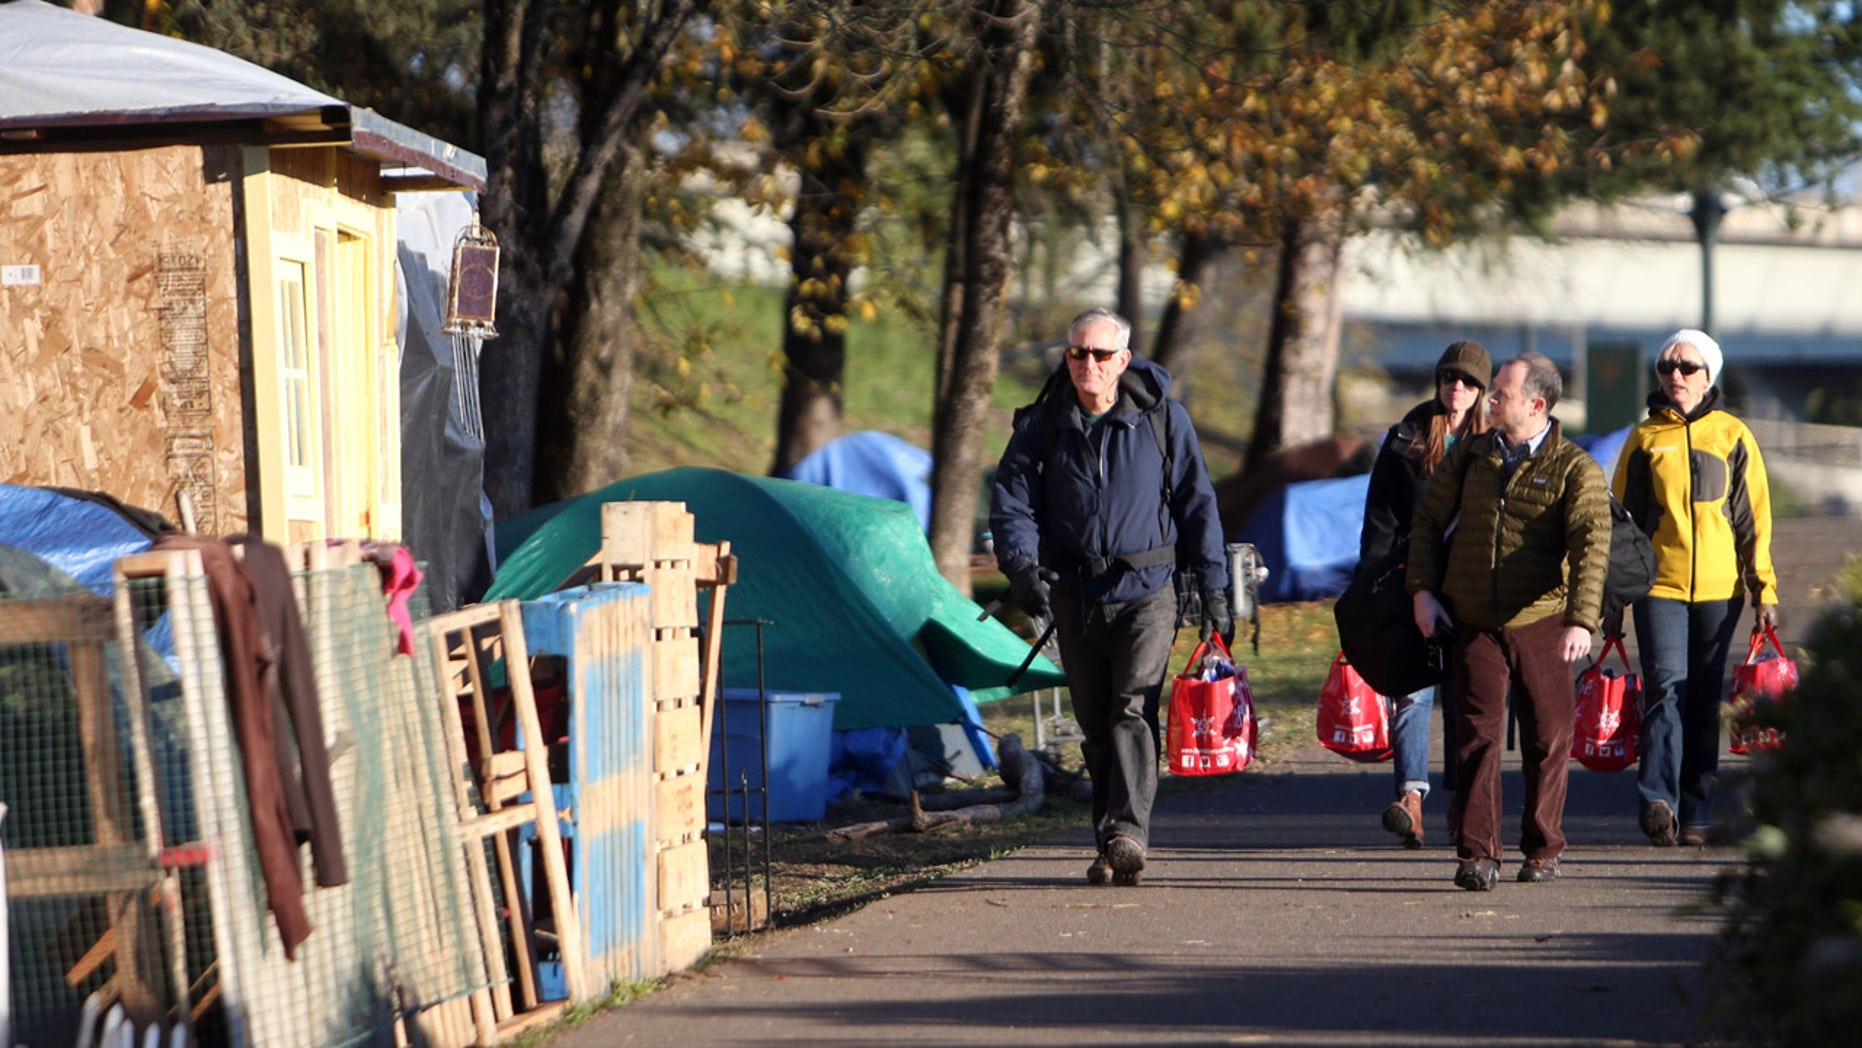 Nov. 27, 2015: Portland Mayor Charlie Hales, left, and his chief of staff Josh Alpert visit the Hazelnut Groove homeless camp in North Portland, Ore.